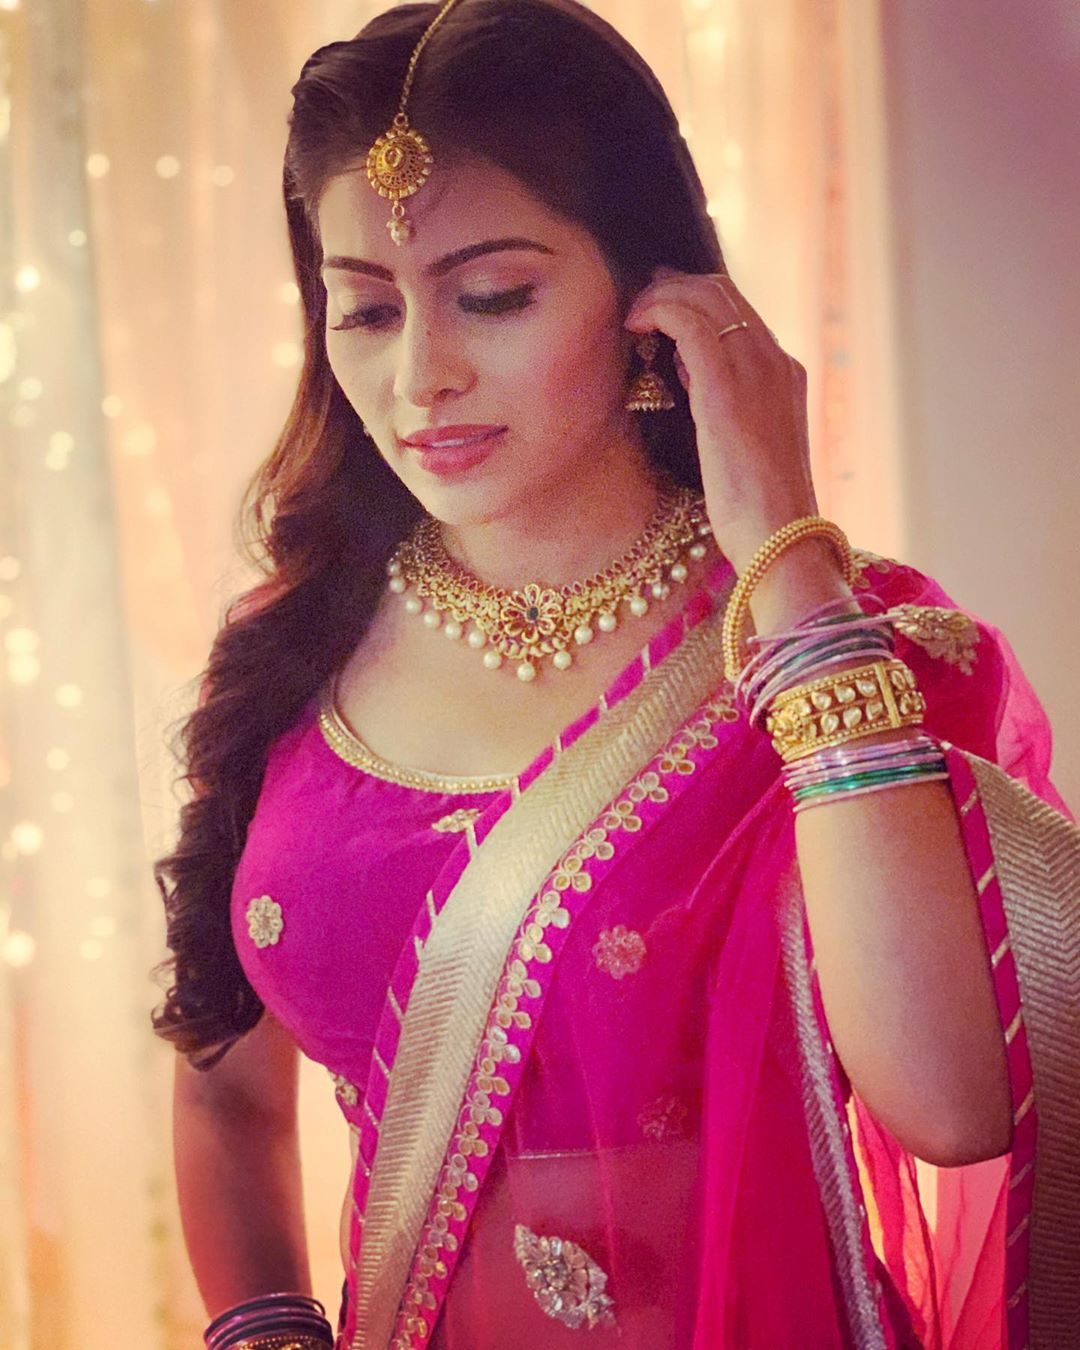 """Aparna Dixit on Instagram """"A handful of dreams 💞"""" in 2020"""